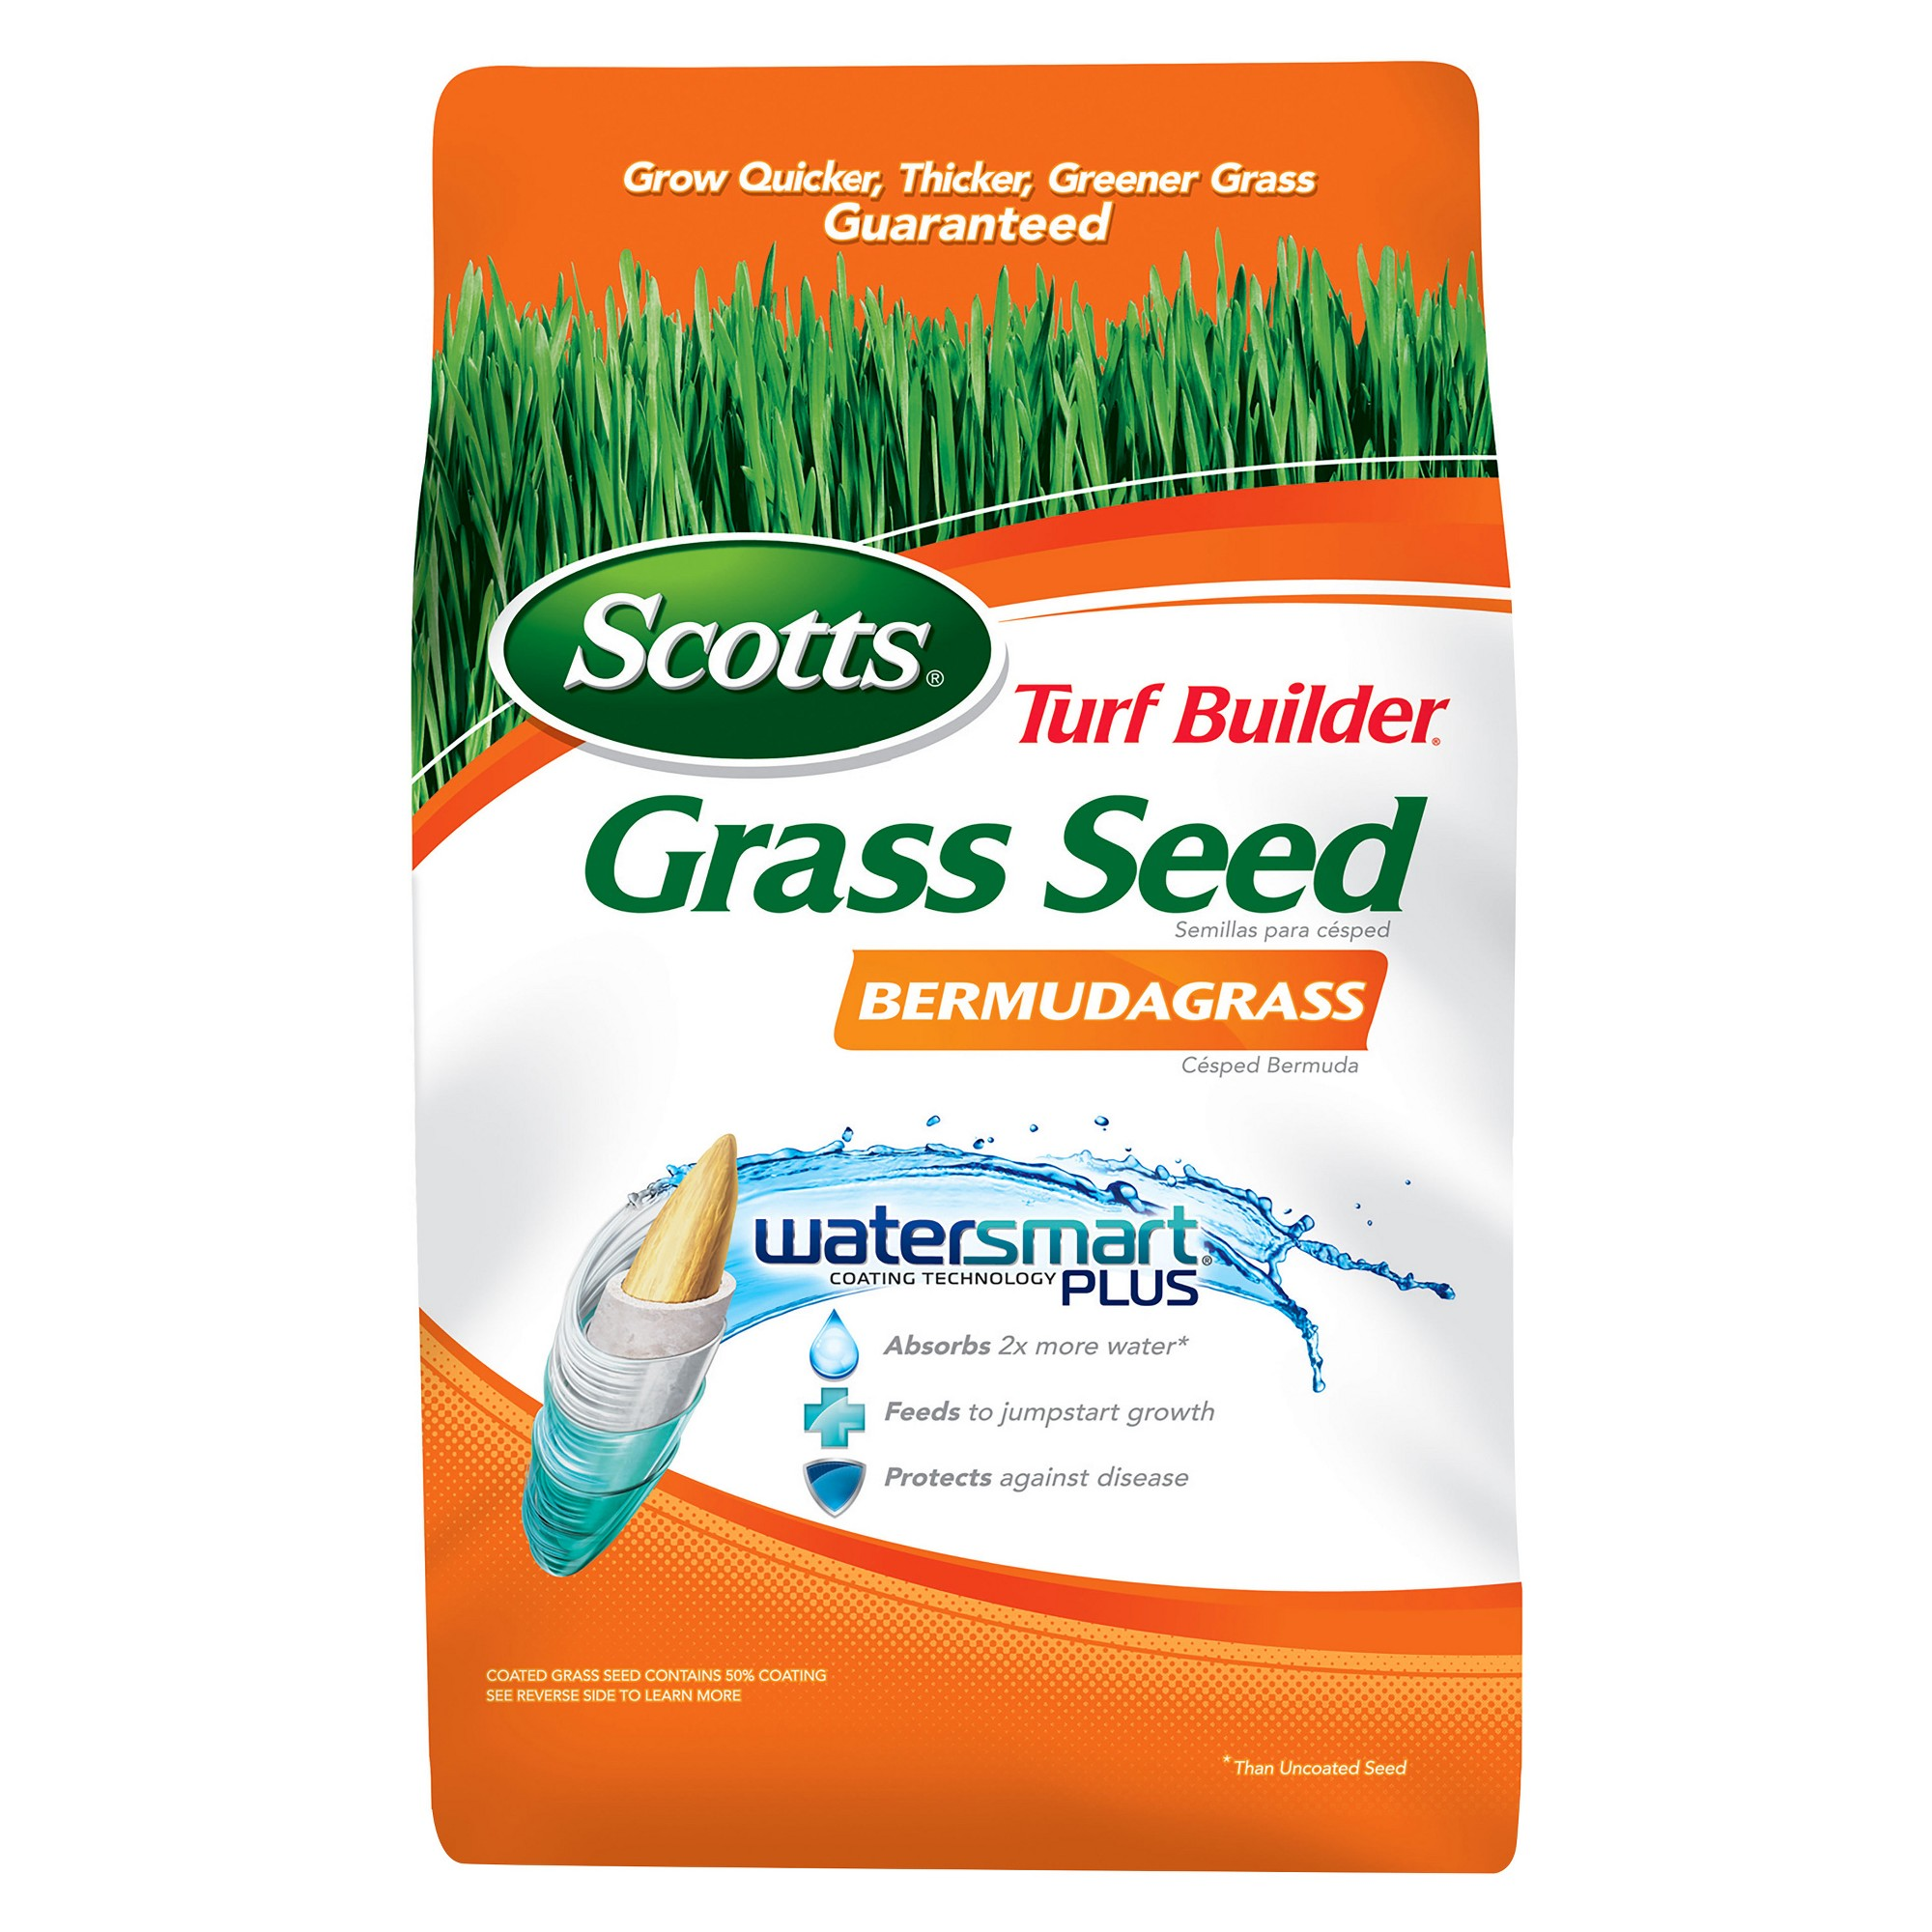 Scotts Turf Builder Grass Seed Bermudagrass 5lb With Images